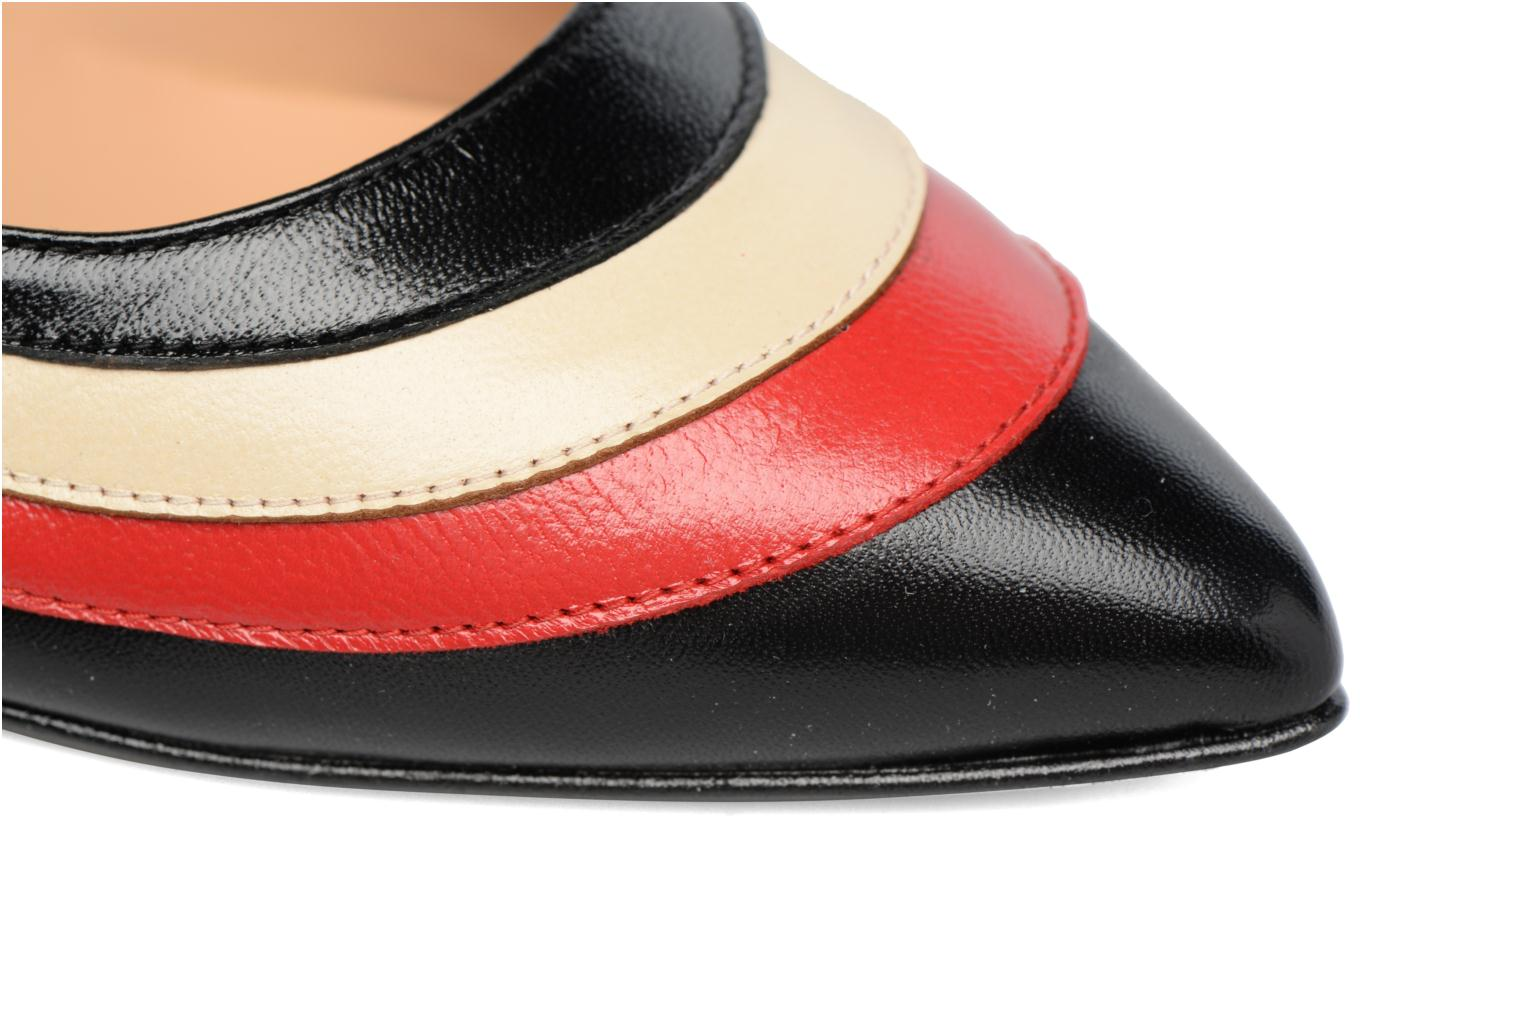 Snow Cuir Sarenza Lisse By 4 Noir Made Rouge Disco pqaUwRE